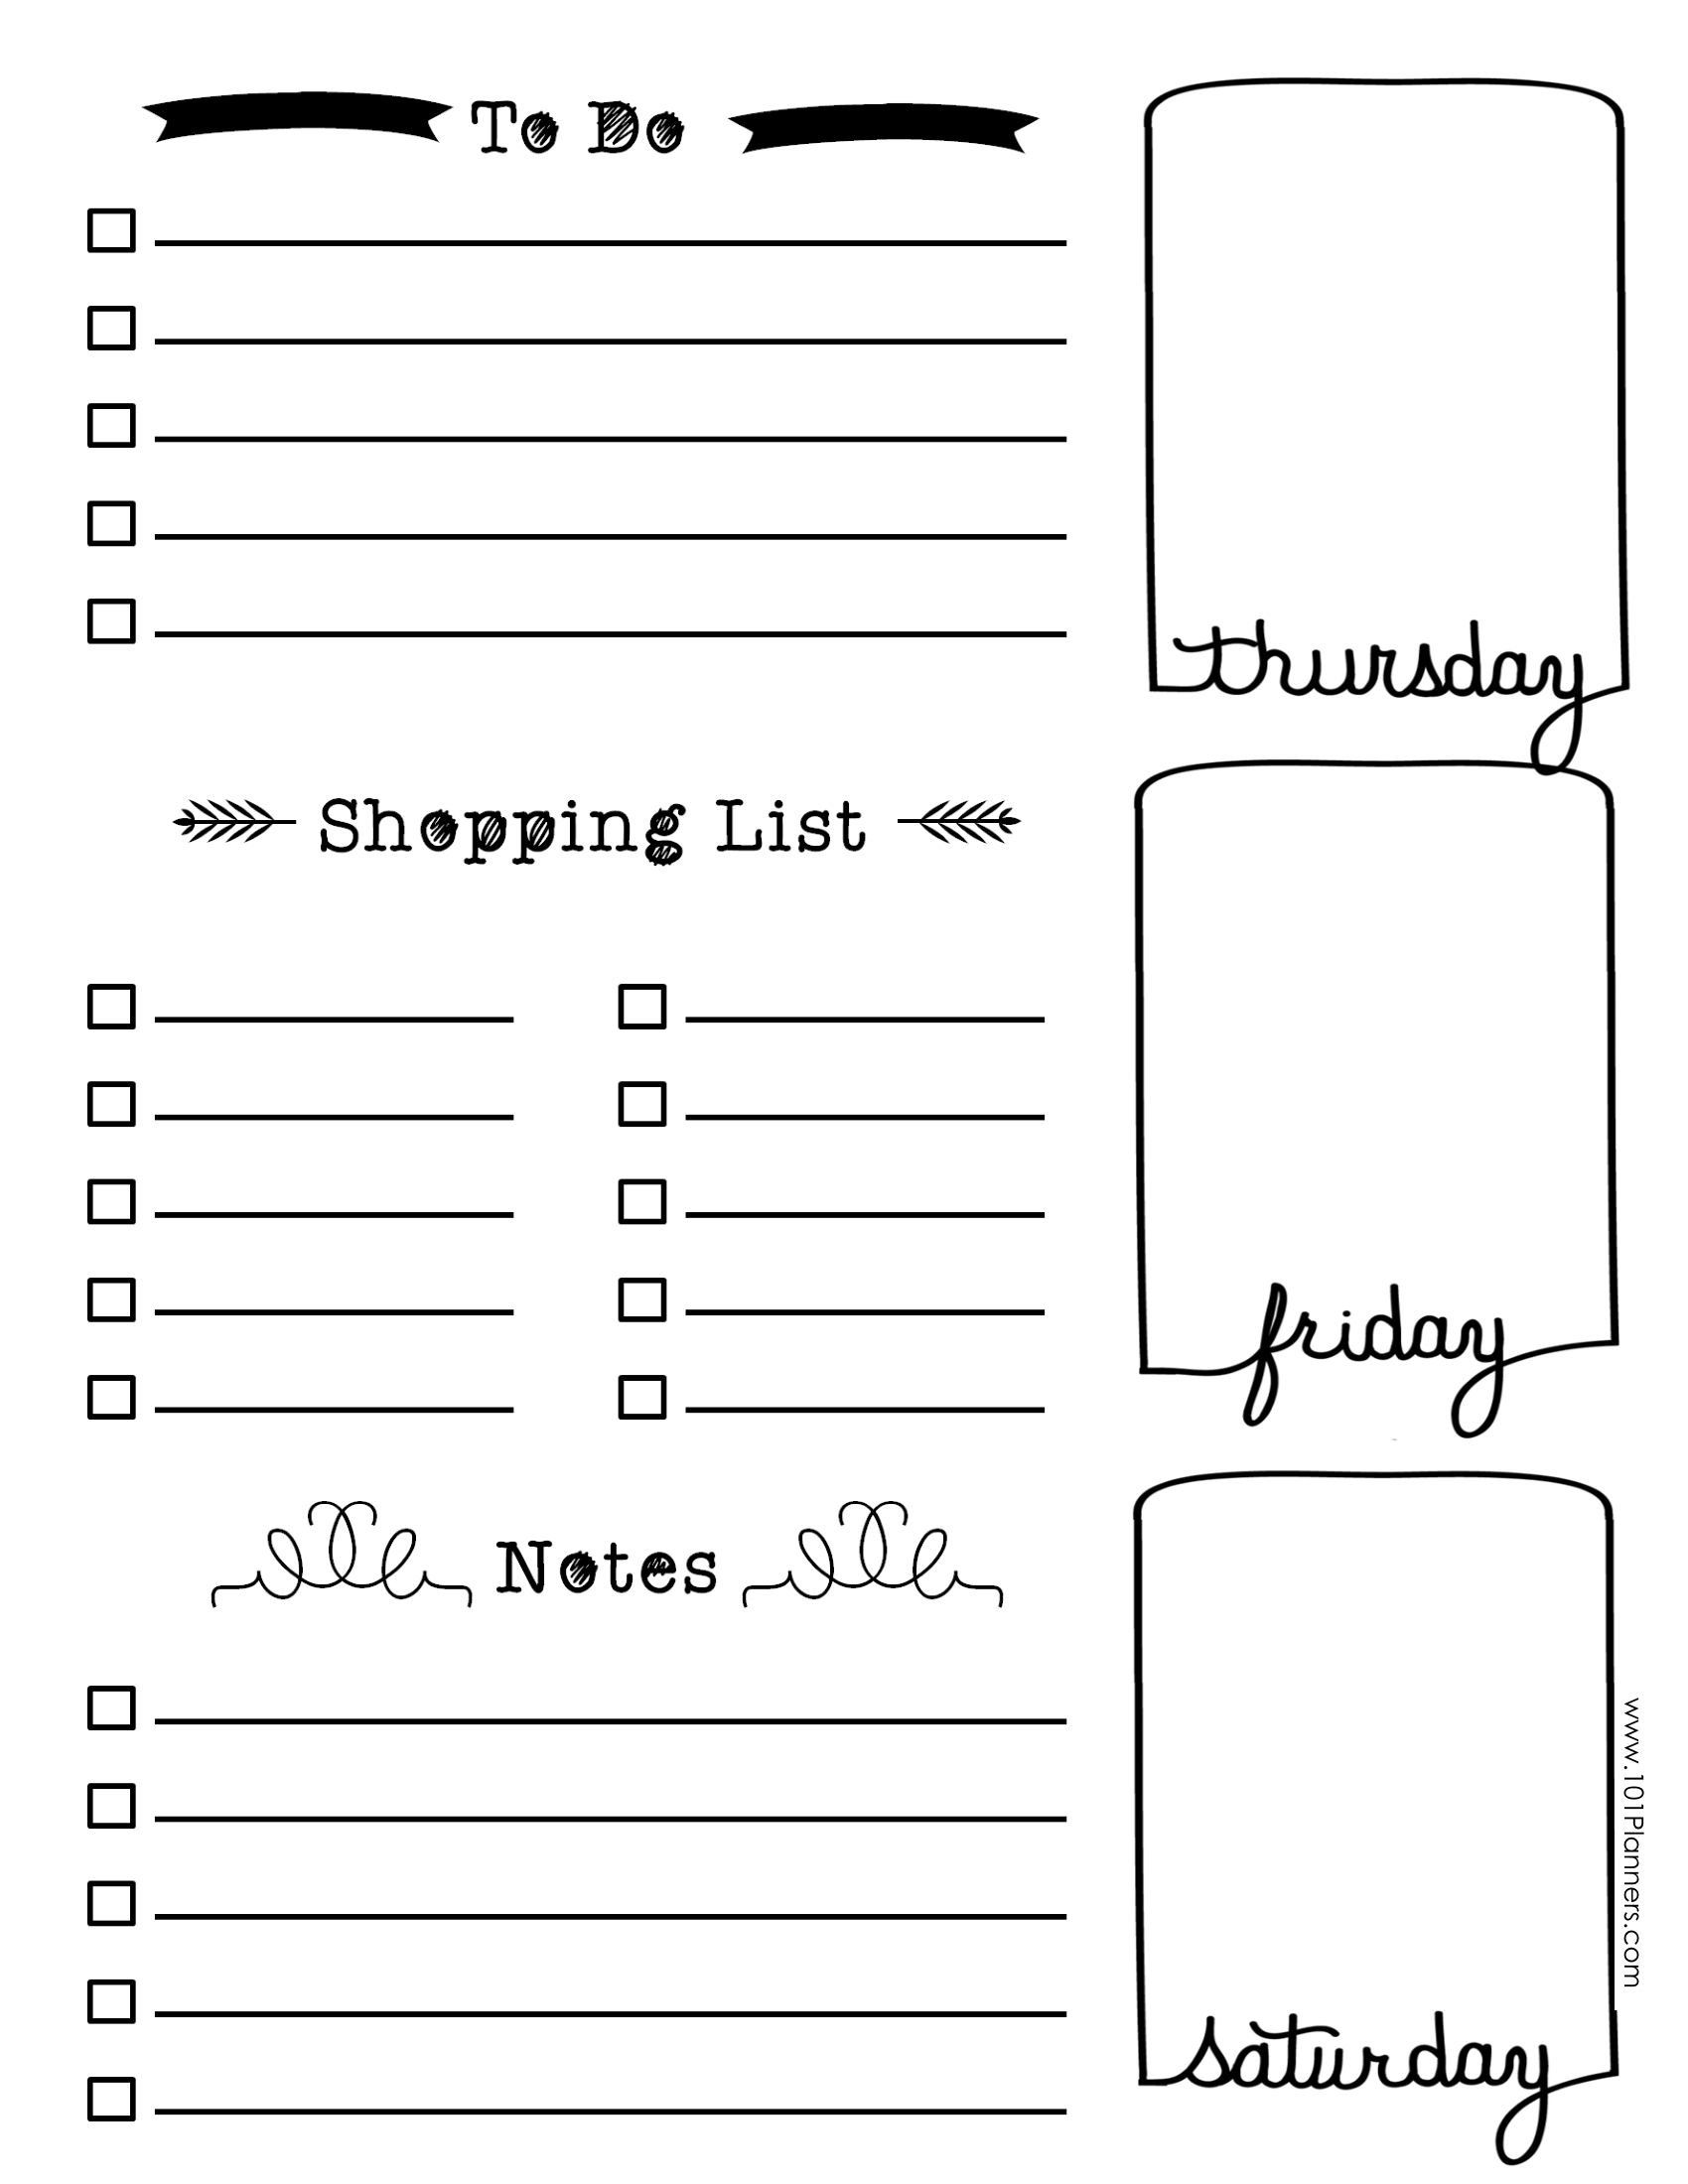 Captivating Image Result For Bullet Journal Templates On Free Journal Templates